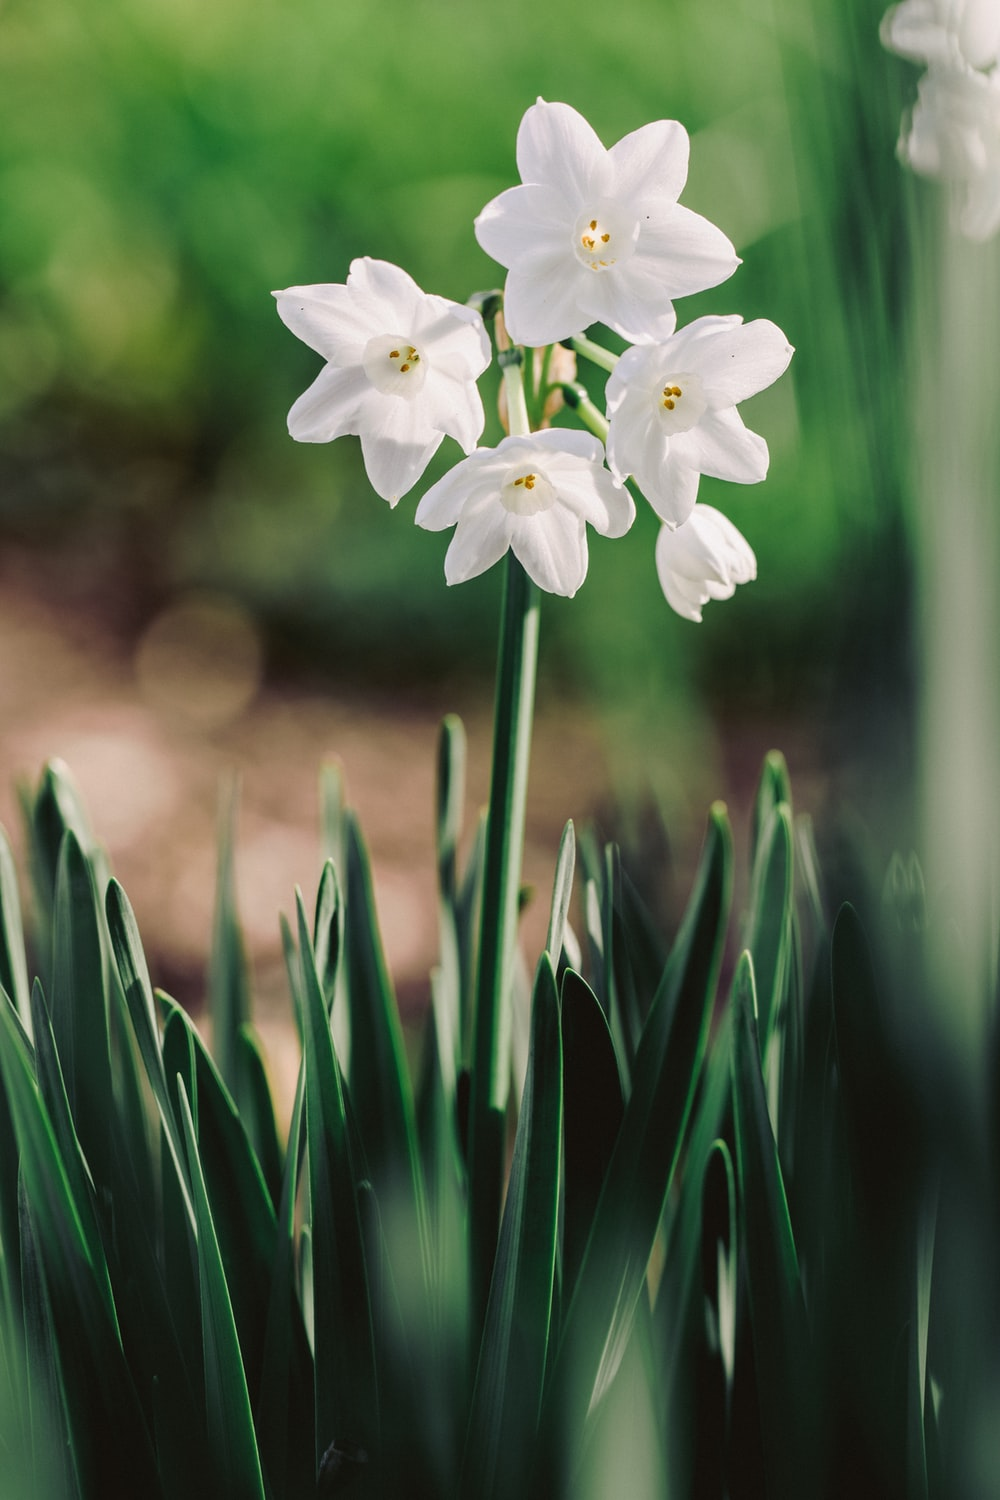 paperwhite daffodils in bloom close-up photography